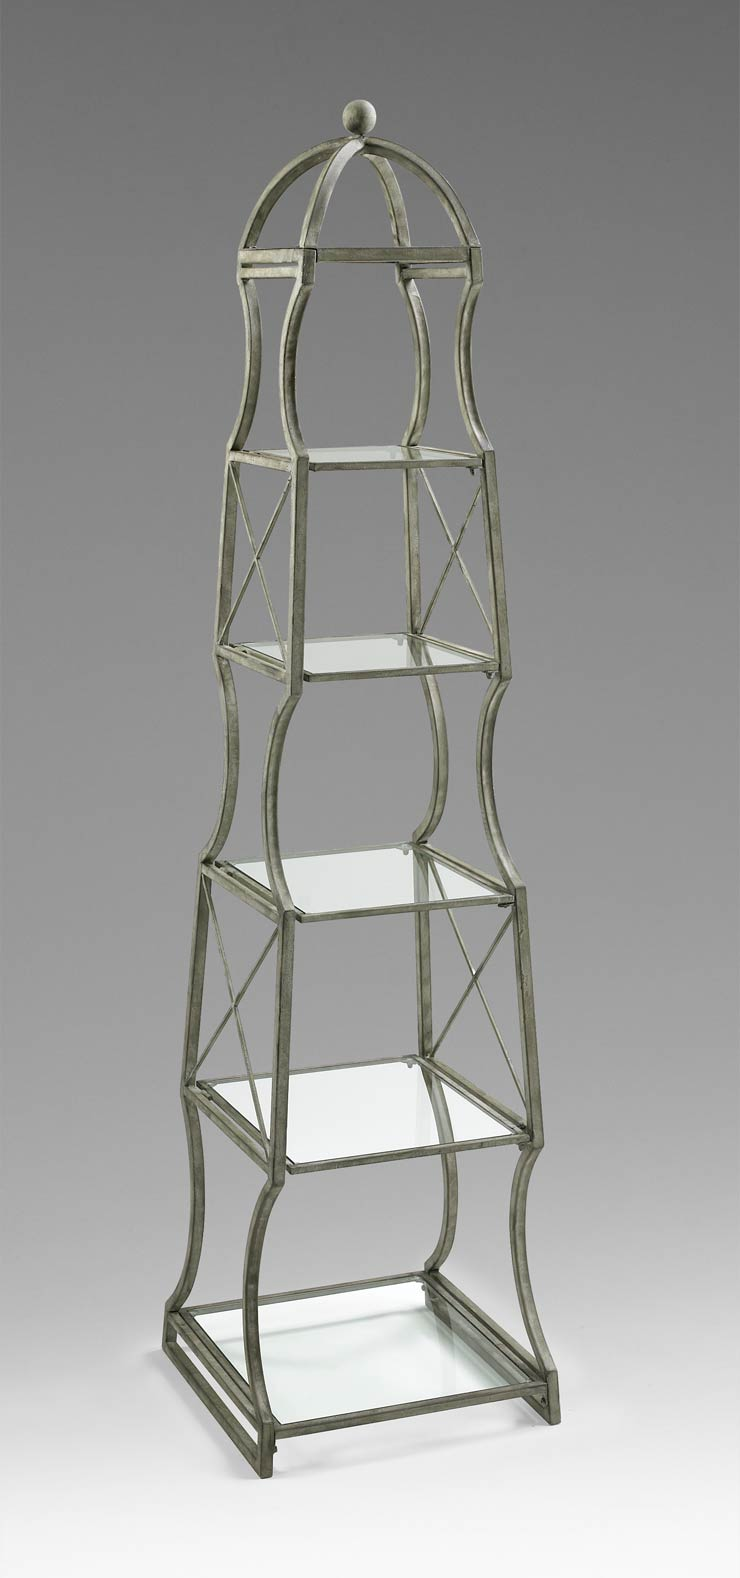 chester iron and glass etagere shelf by cyan design. Black Bedroom Furniture Sets. Home Design Ideas